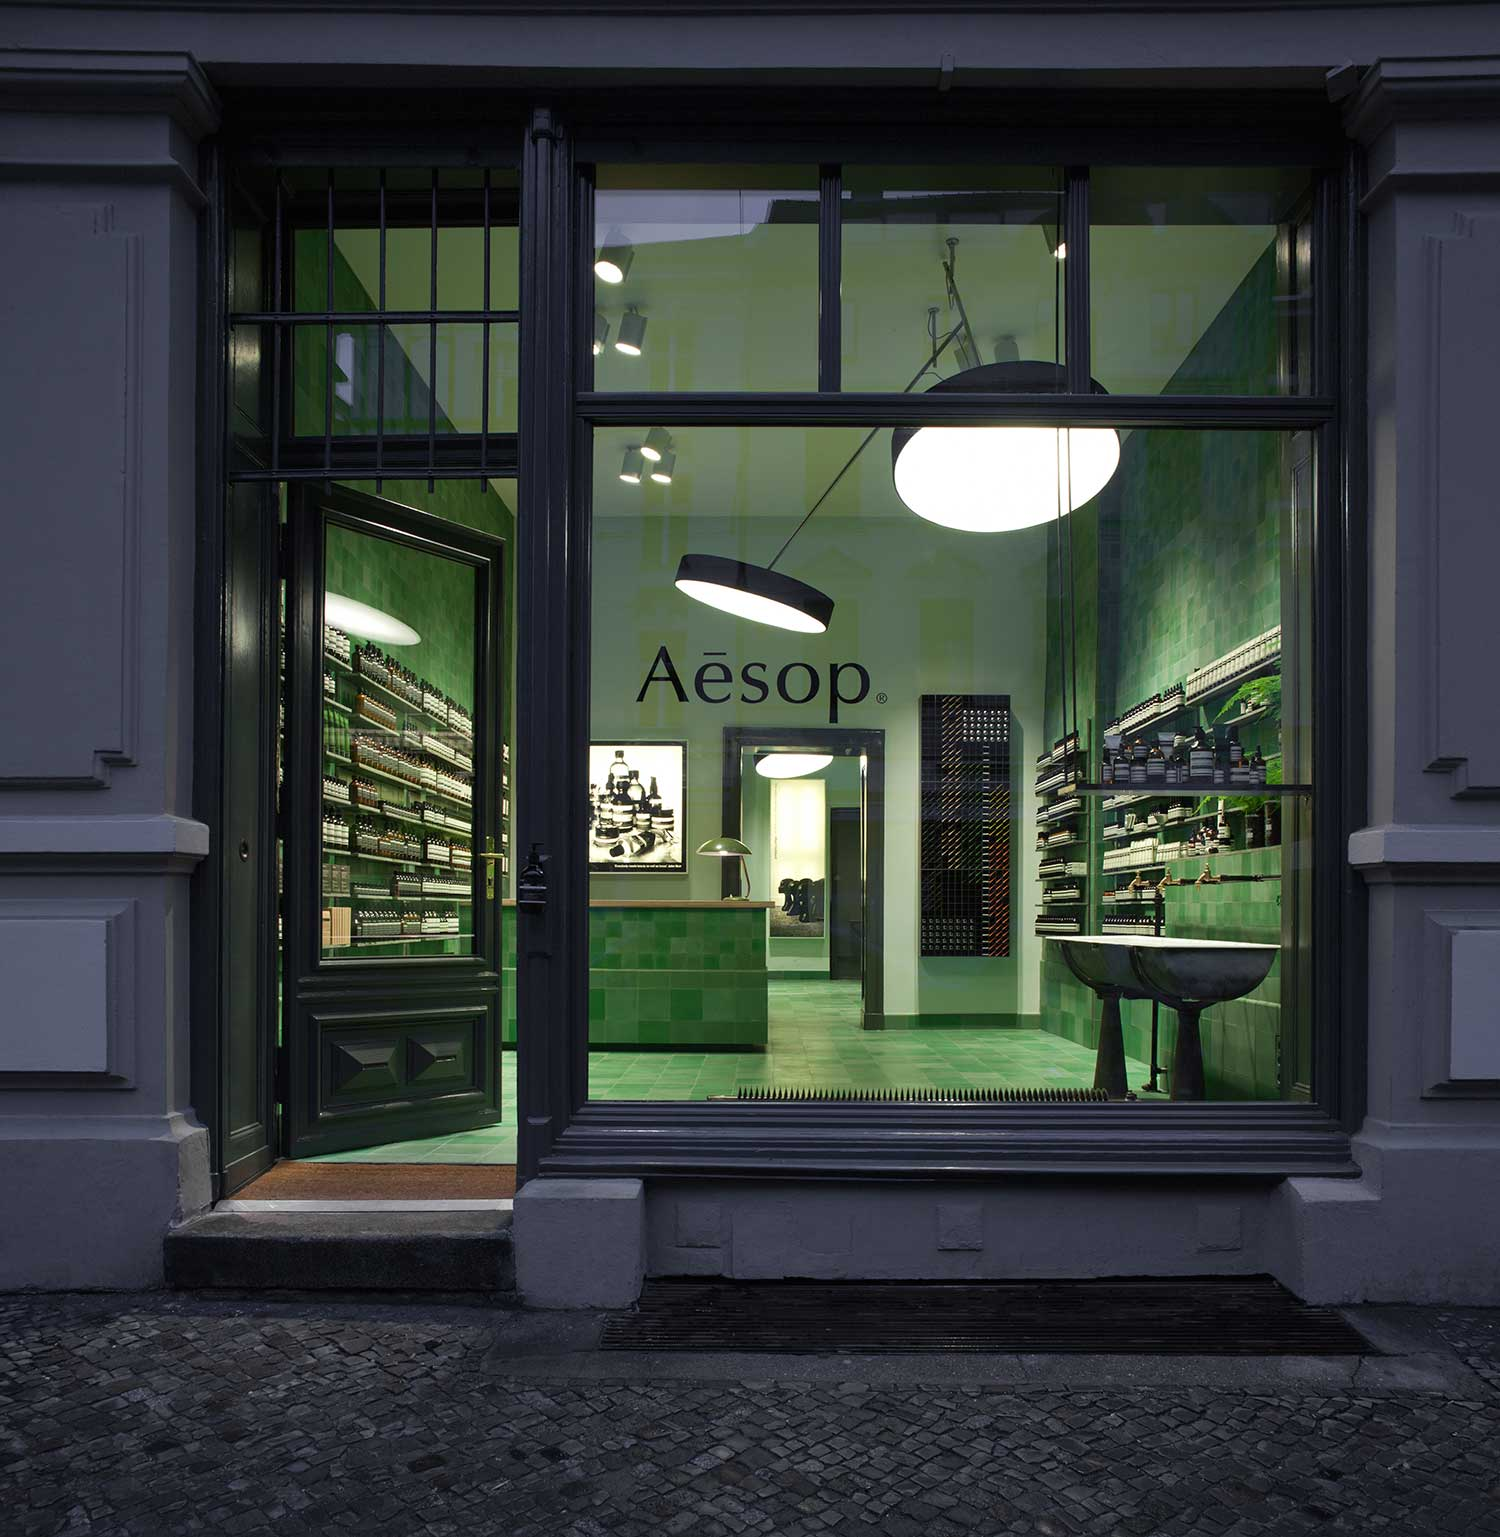 Aesop Mitte by    Weiss-Heiten  Berlin, Germany